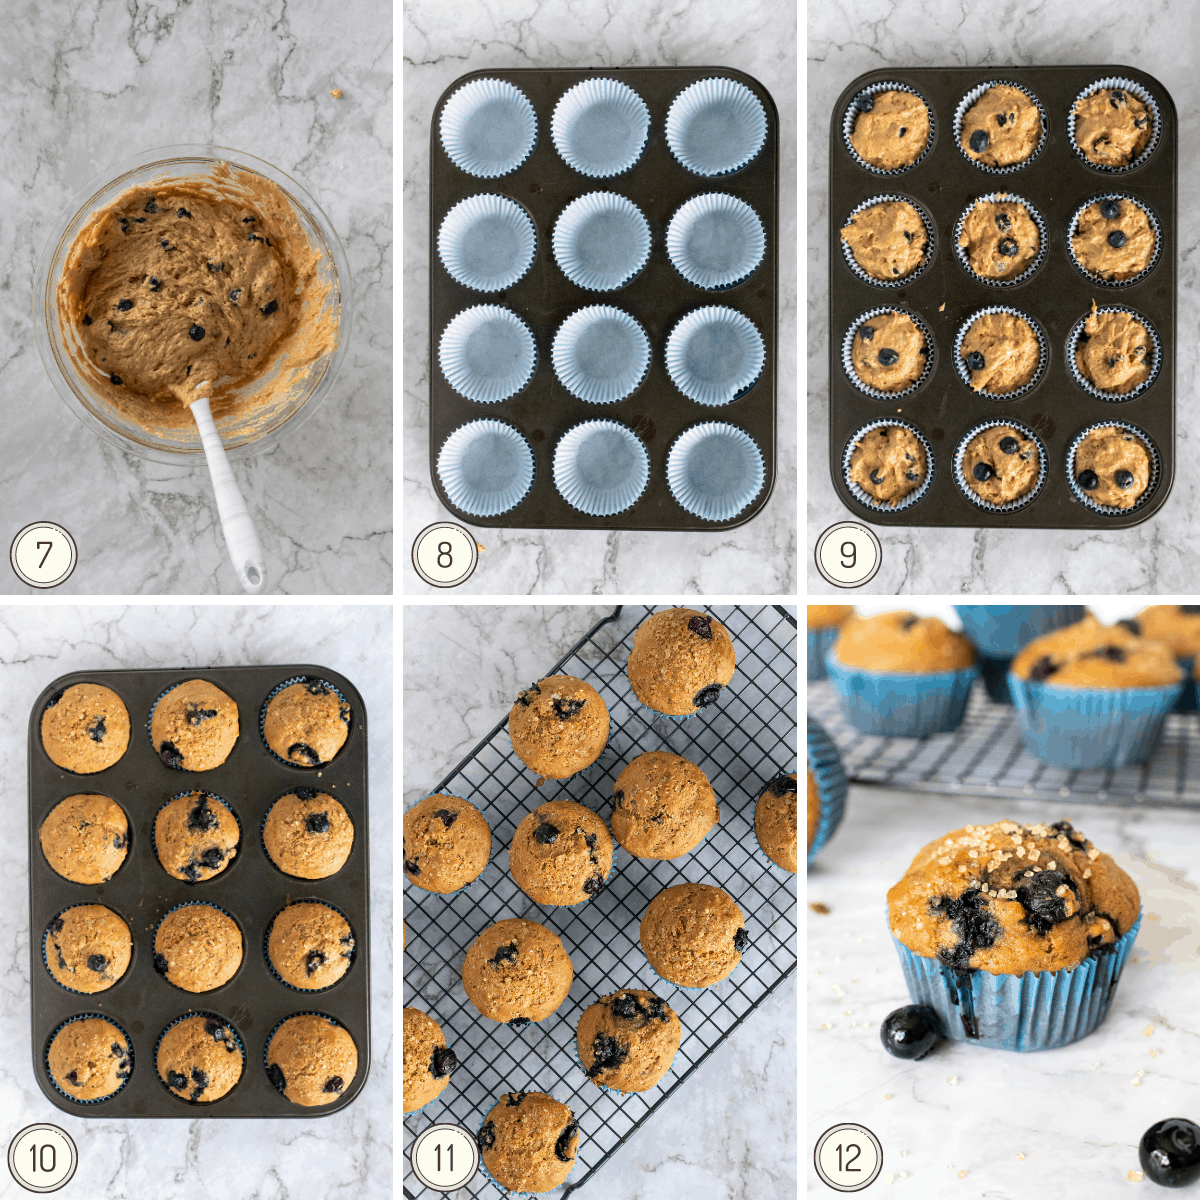 the last step by step collage to make blueberry muffins